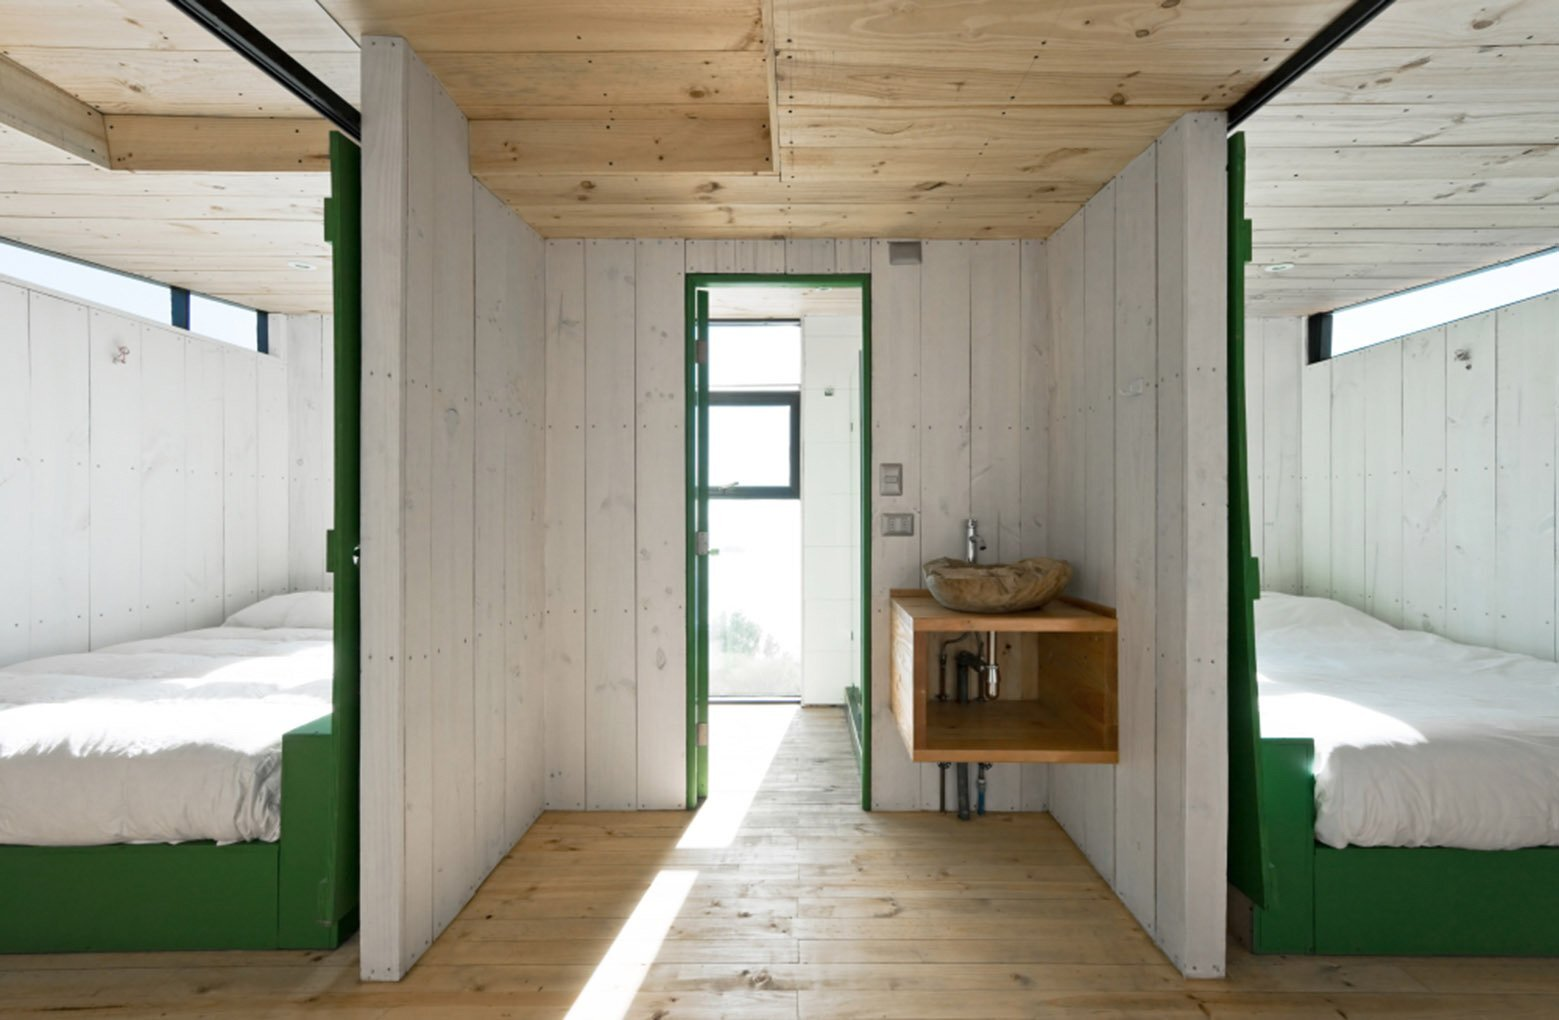 2 Hermanos Cabin - Small Cabin - WMR Arquitectos - Chile - Bedrooms - Humble Homes